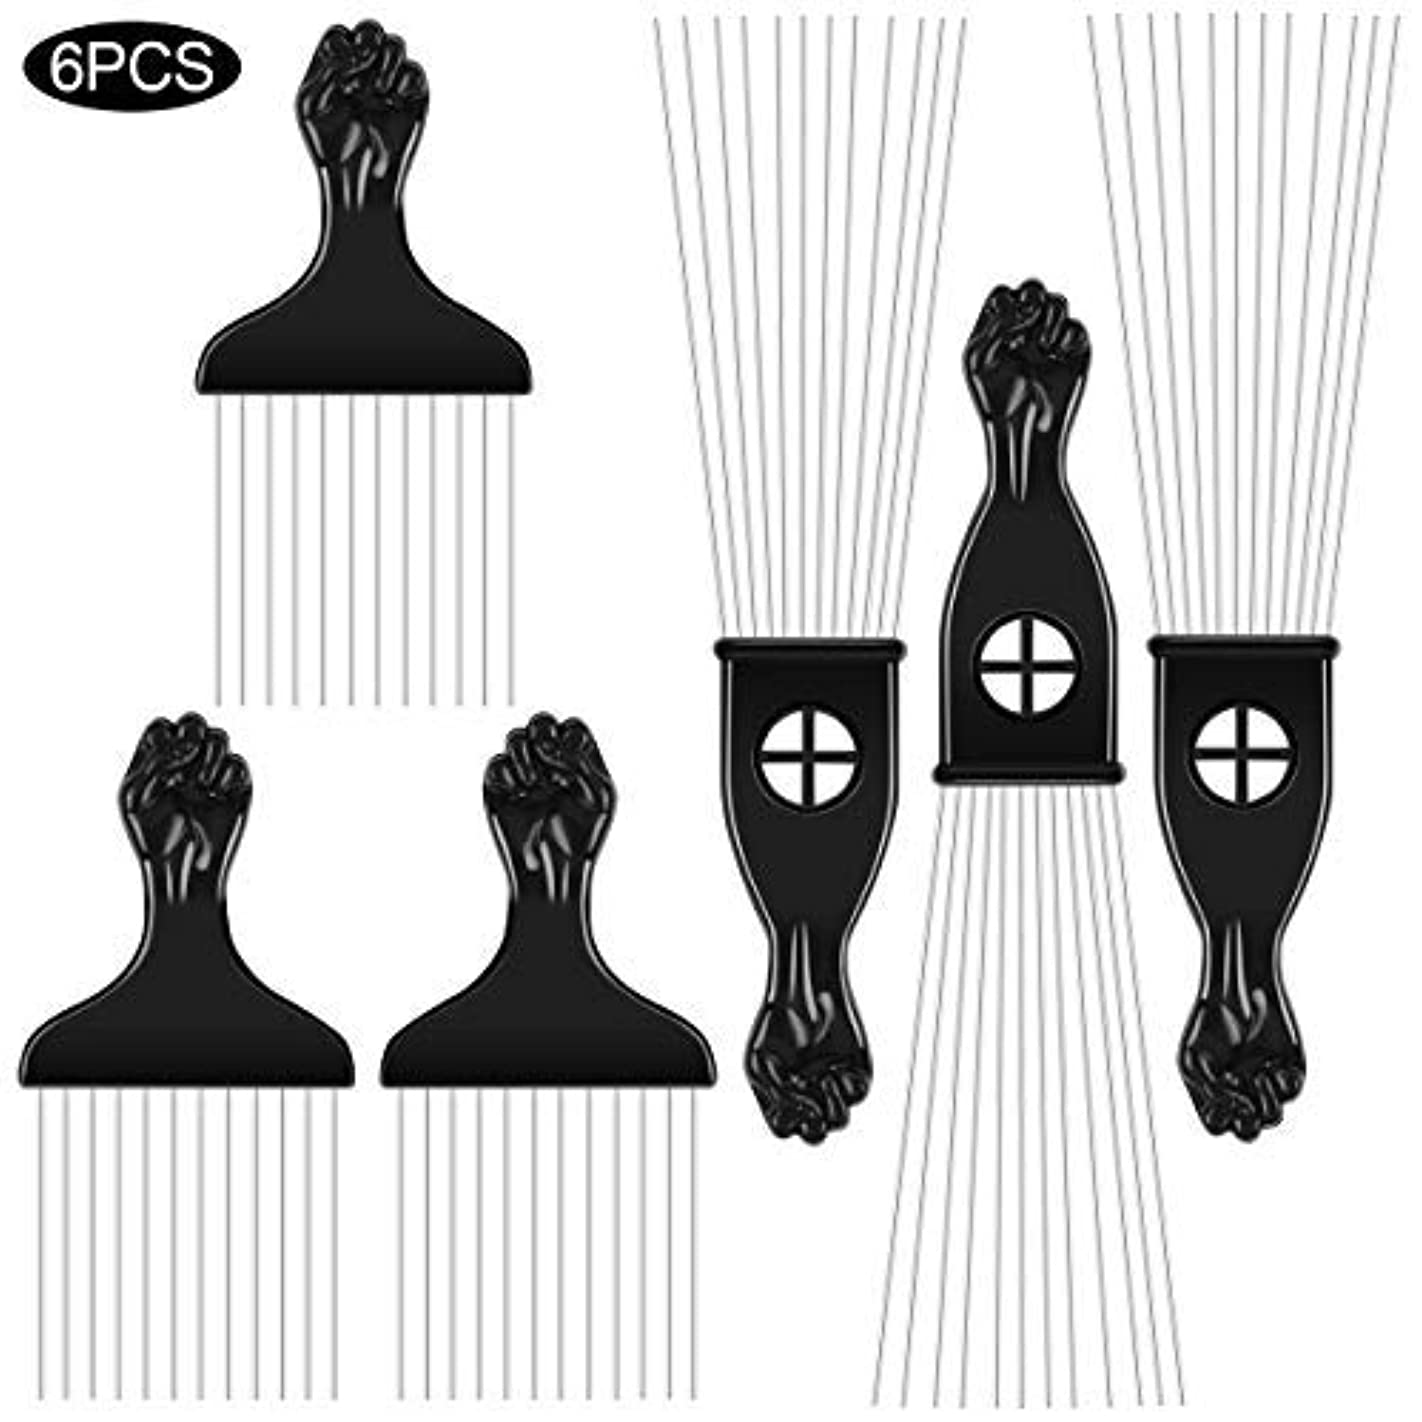 保証する接触計画6PCS Afro Combs Metal African American black Fist Pick Comb Hairdressing Styling Tool [並行輸入品]